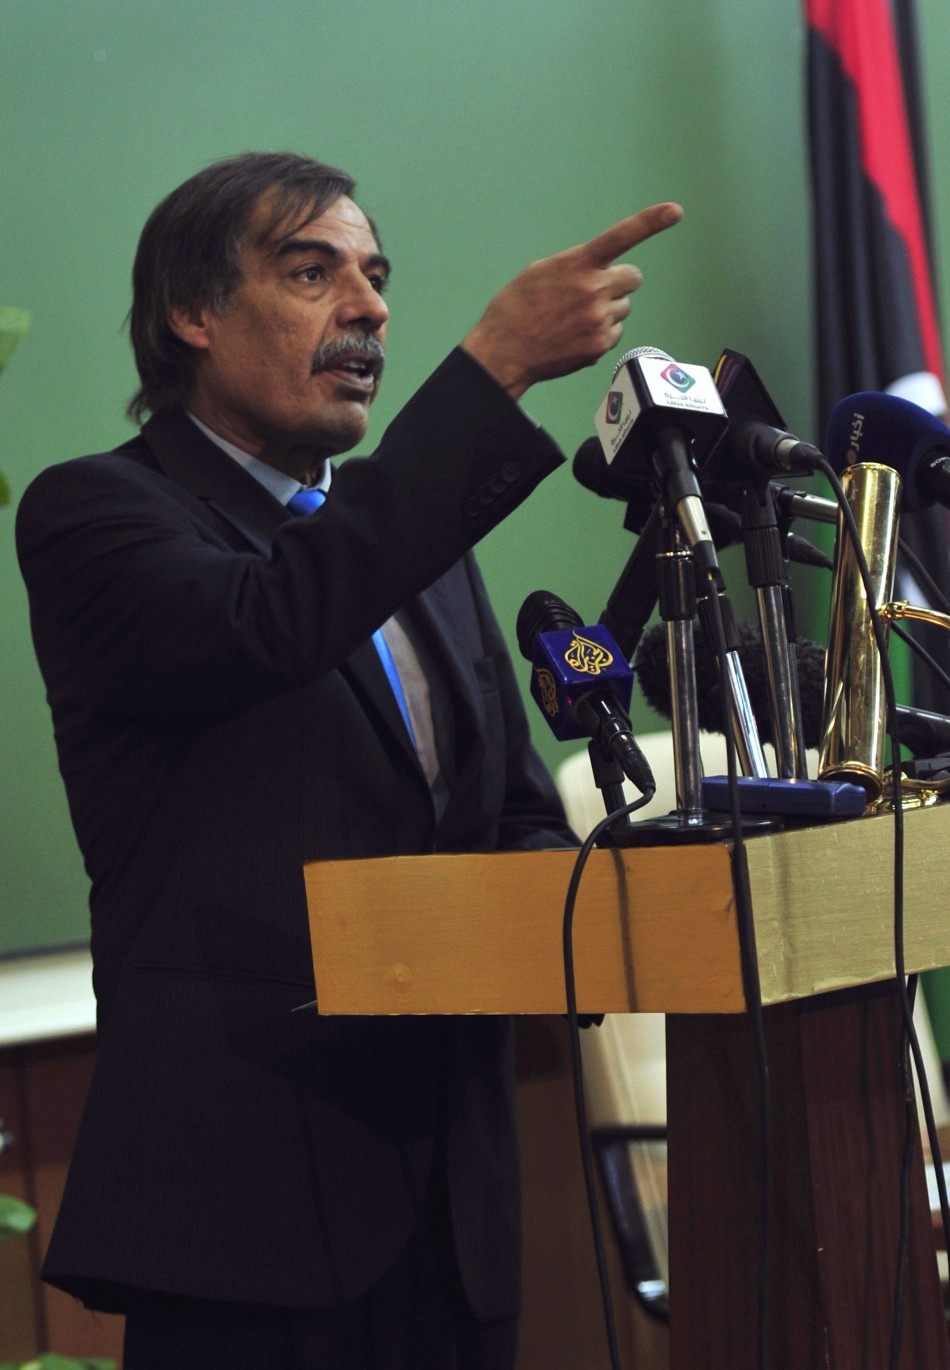 Ali Tarhouni, Libyan National Transitional Council's minister for oil and finance, attends a news conference in Benghazi